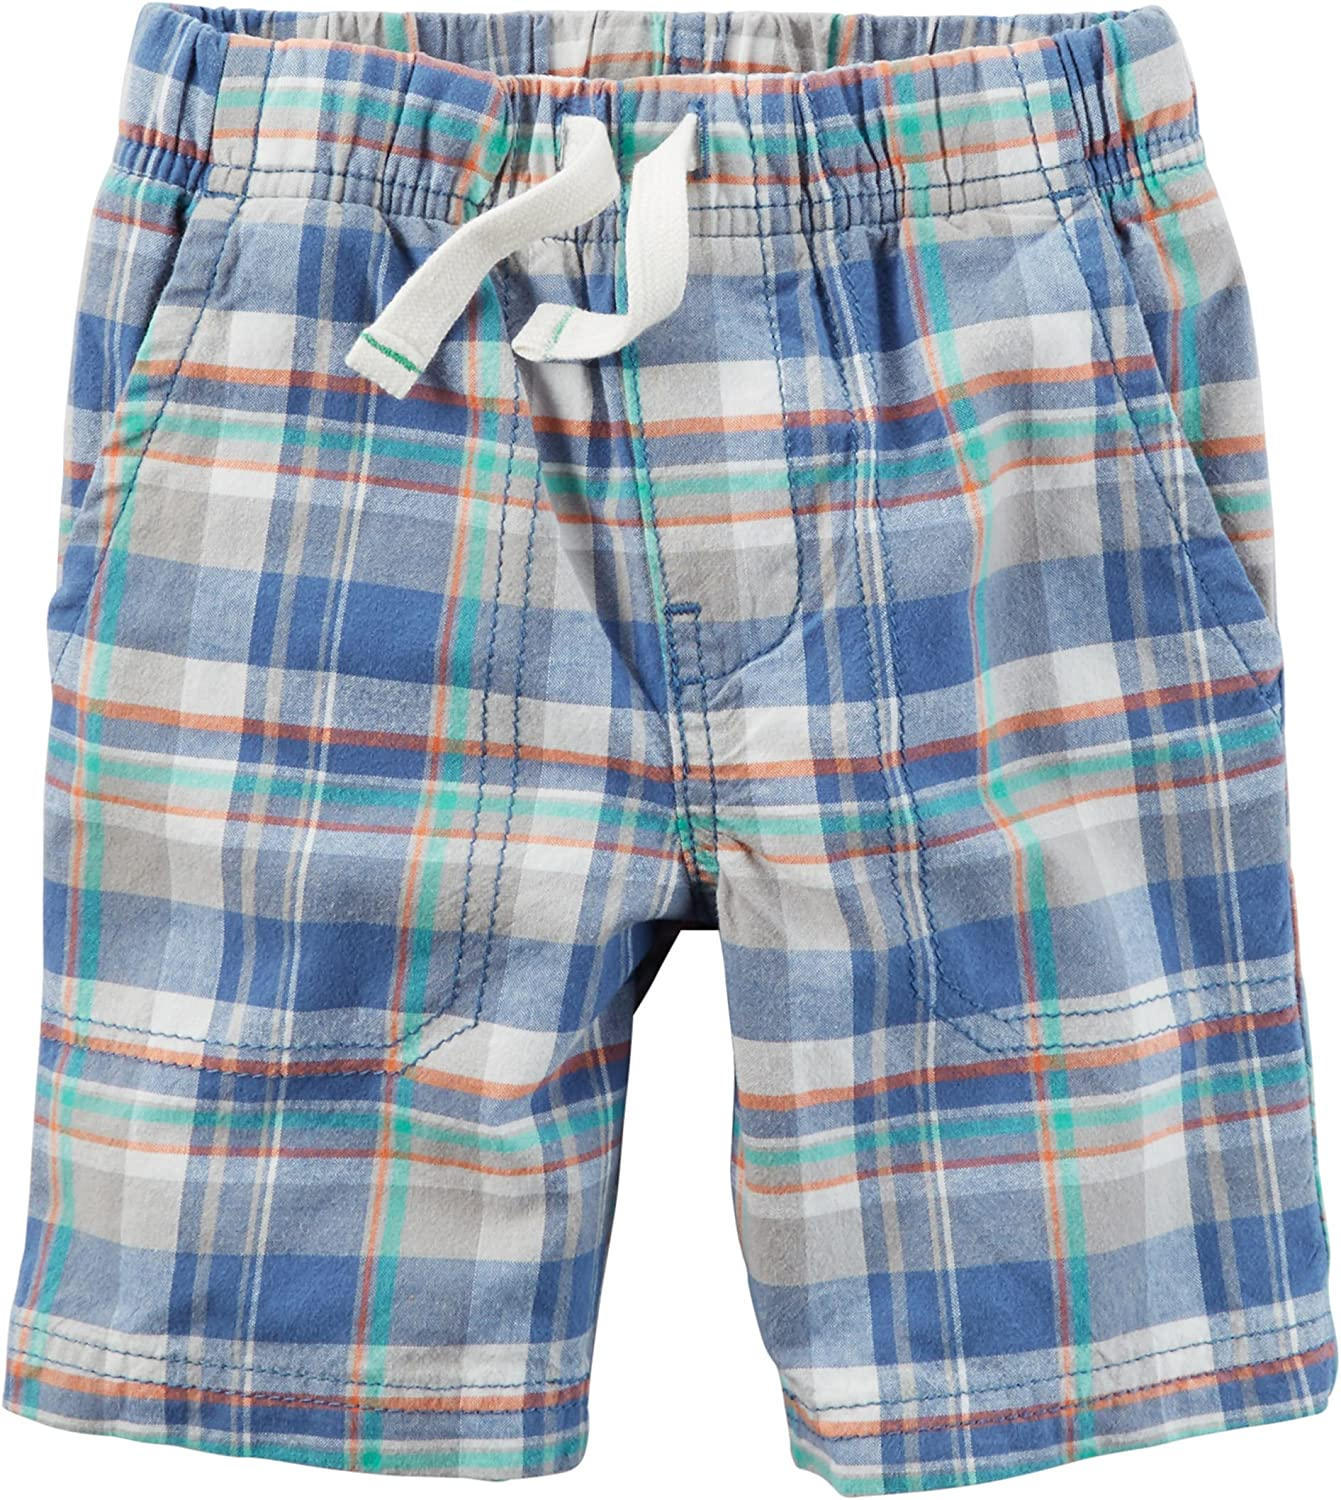 Carter's Boy's Blue Plaid Max 71% OFF Pull OFFicial mail order Months On 9 Shorts Cotton